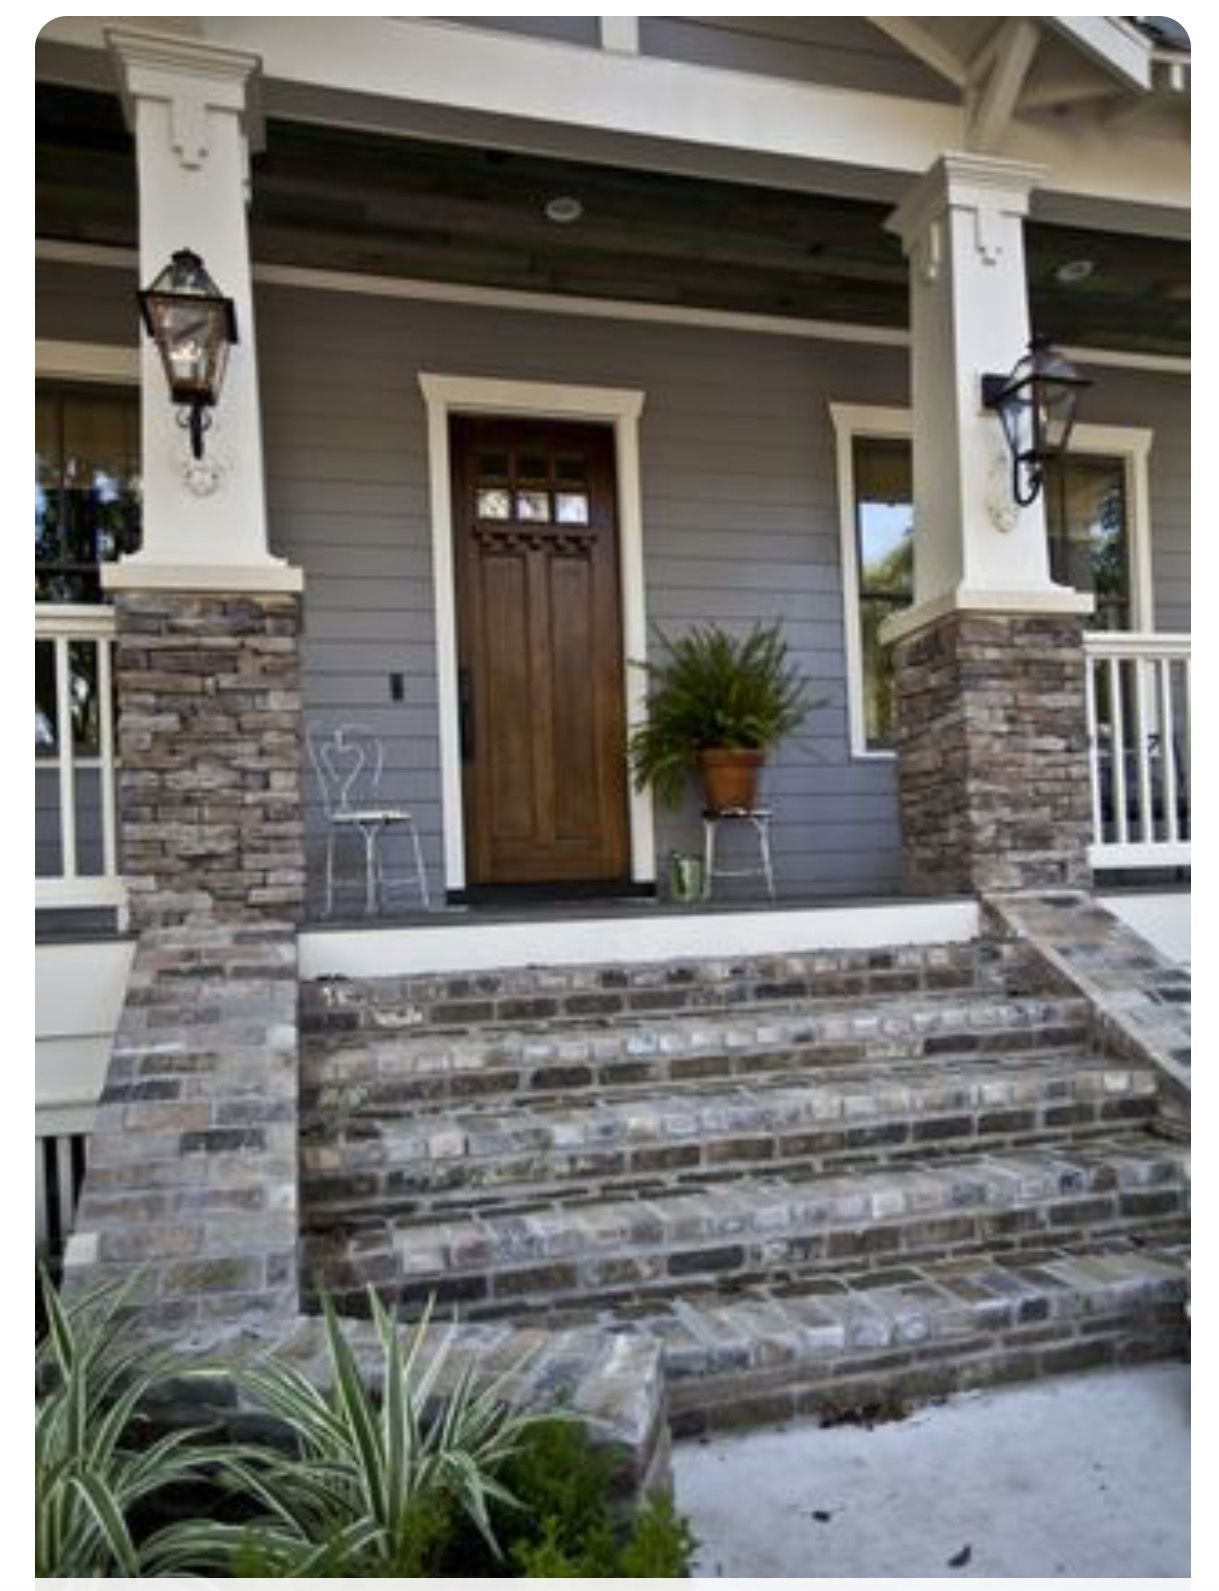 House Paint Exterior Exterior Stairs Exterior Brick: Pin By Denise McDaniel On My Home Decor Style